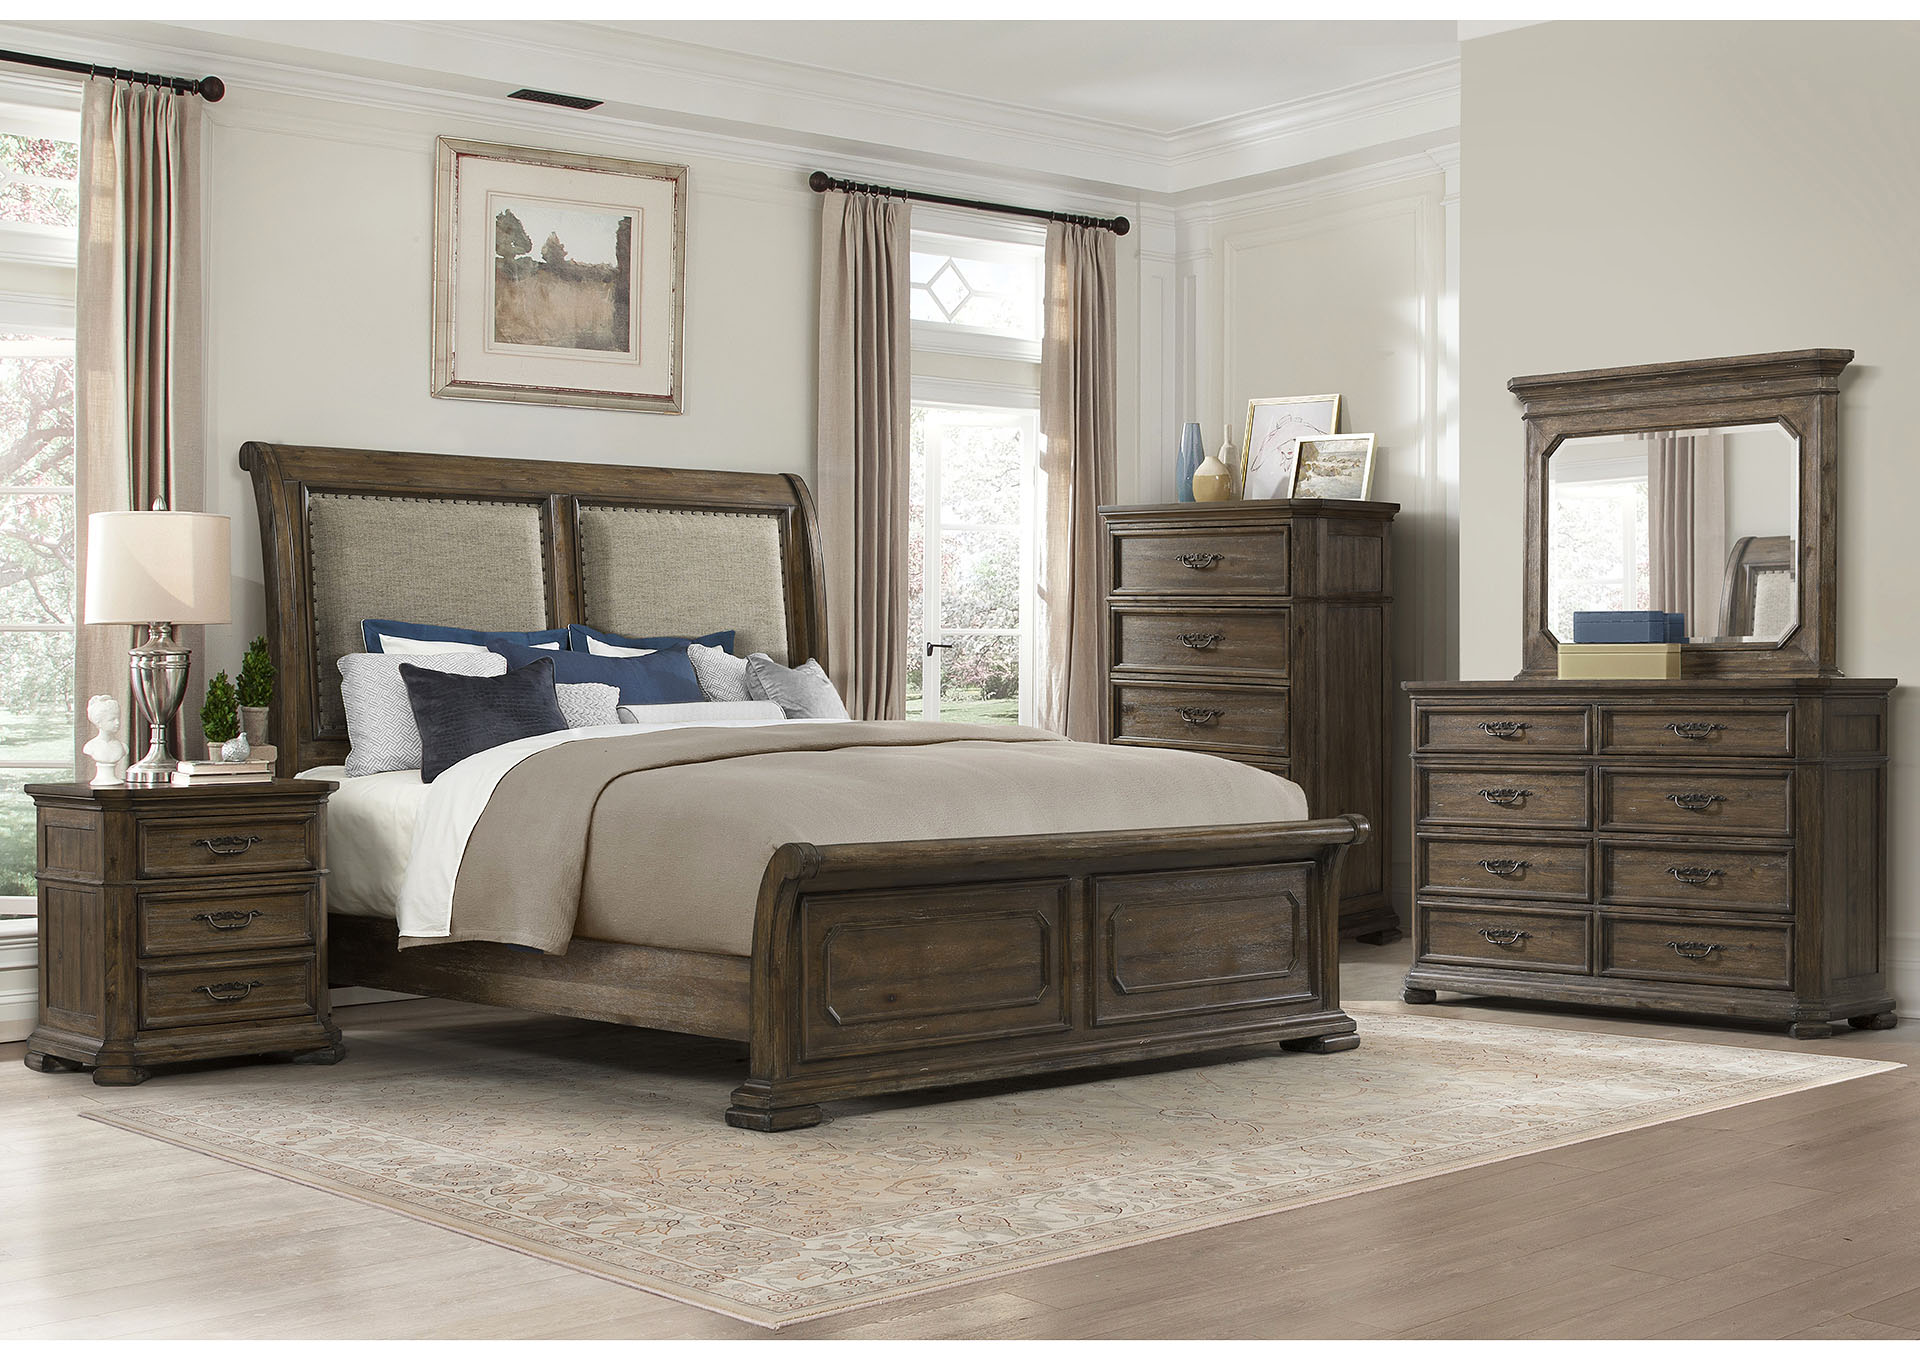 1050 Casa Grande Dresser with Mirror,Lane Furniture